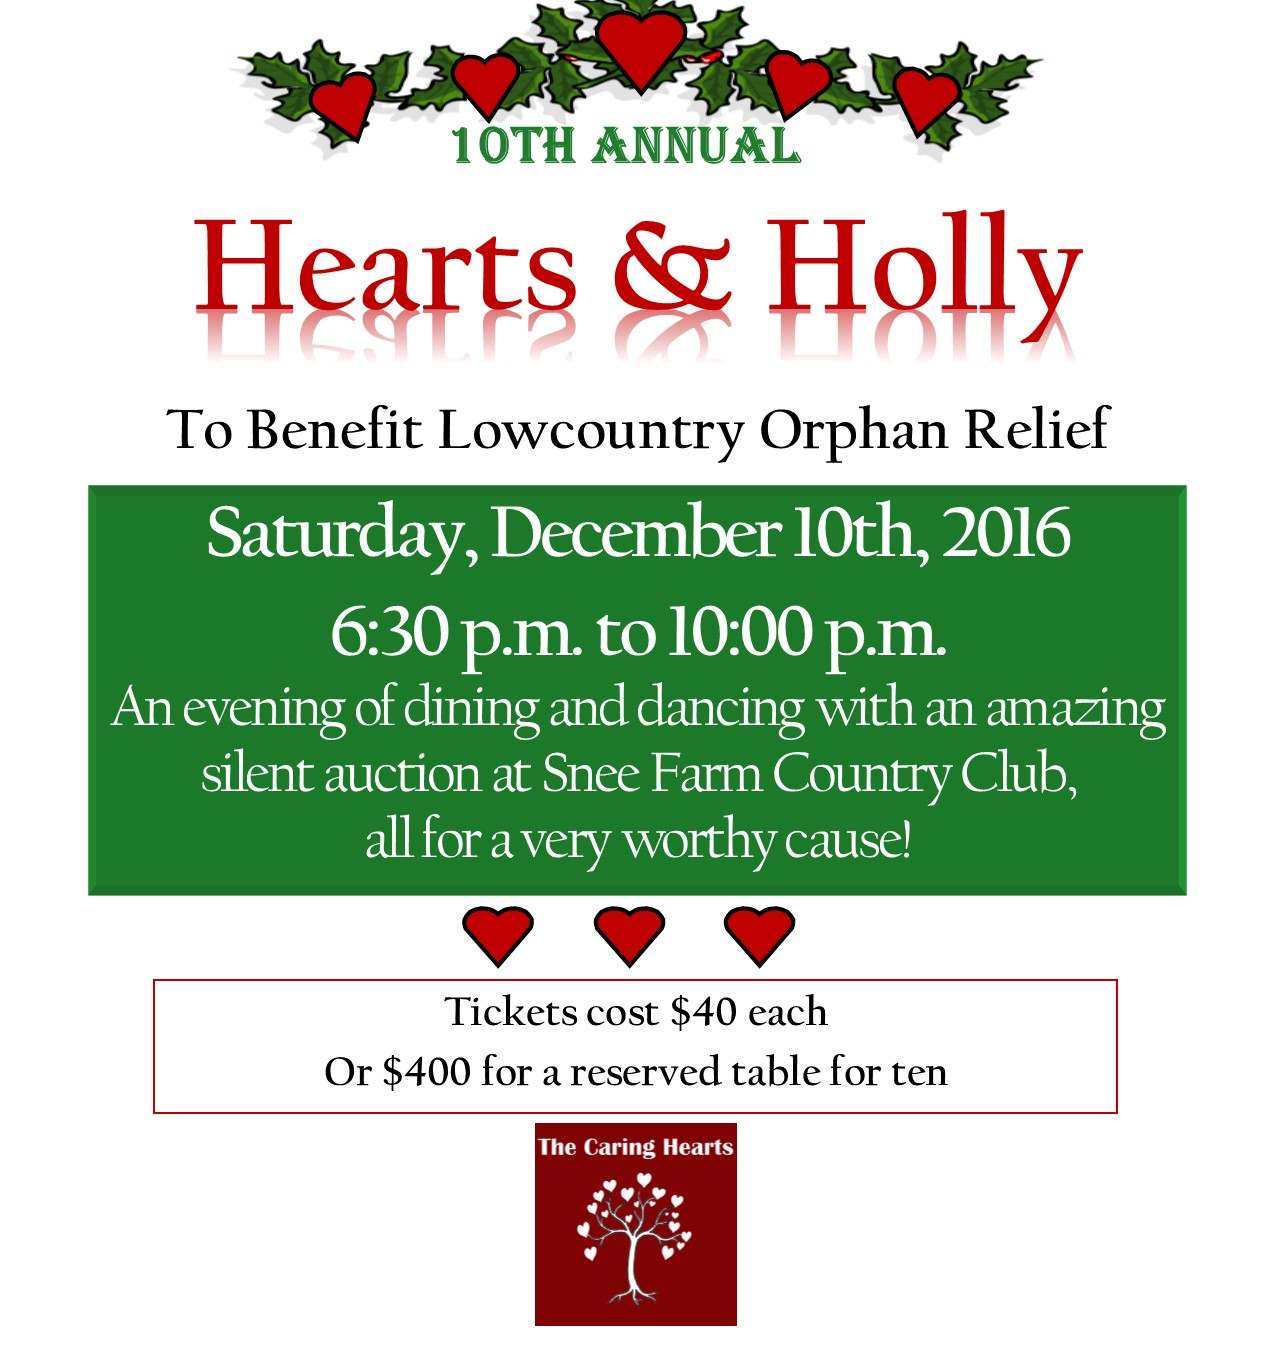 10th Annual Hearts & Holly